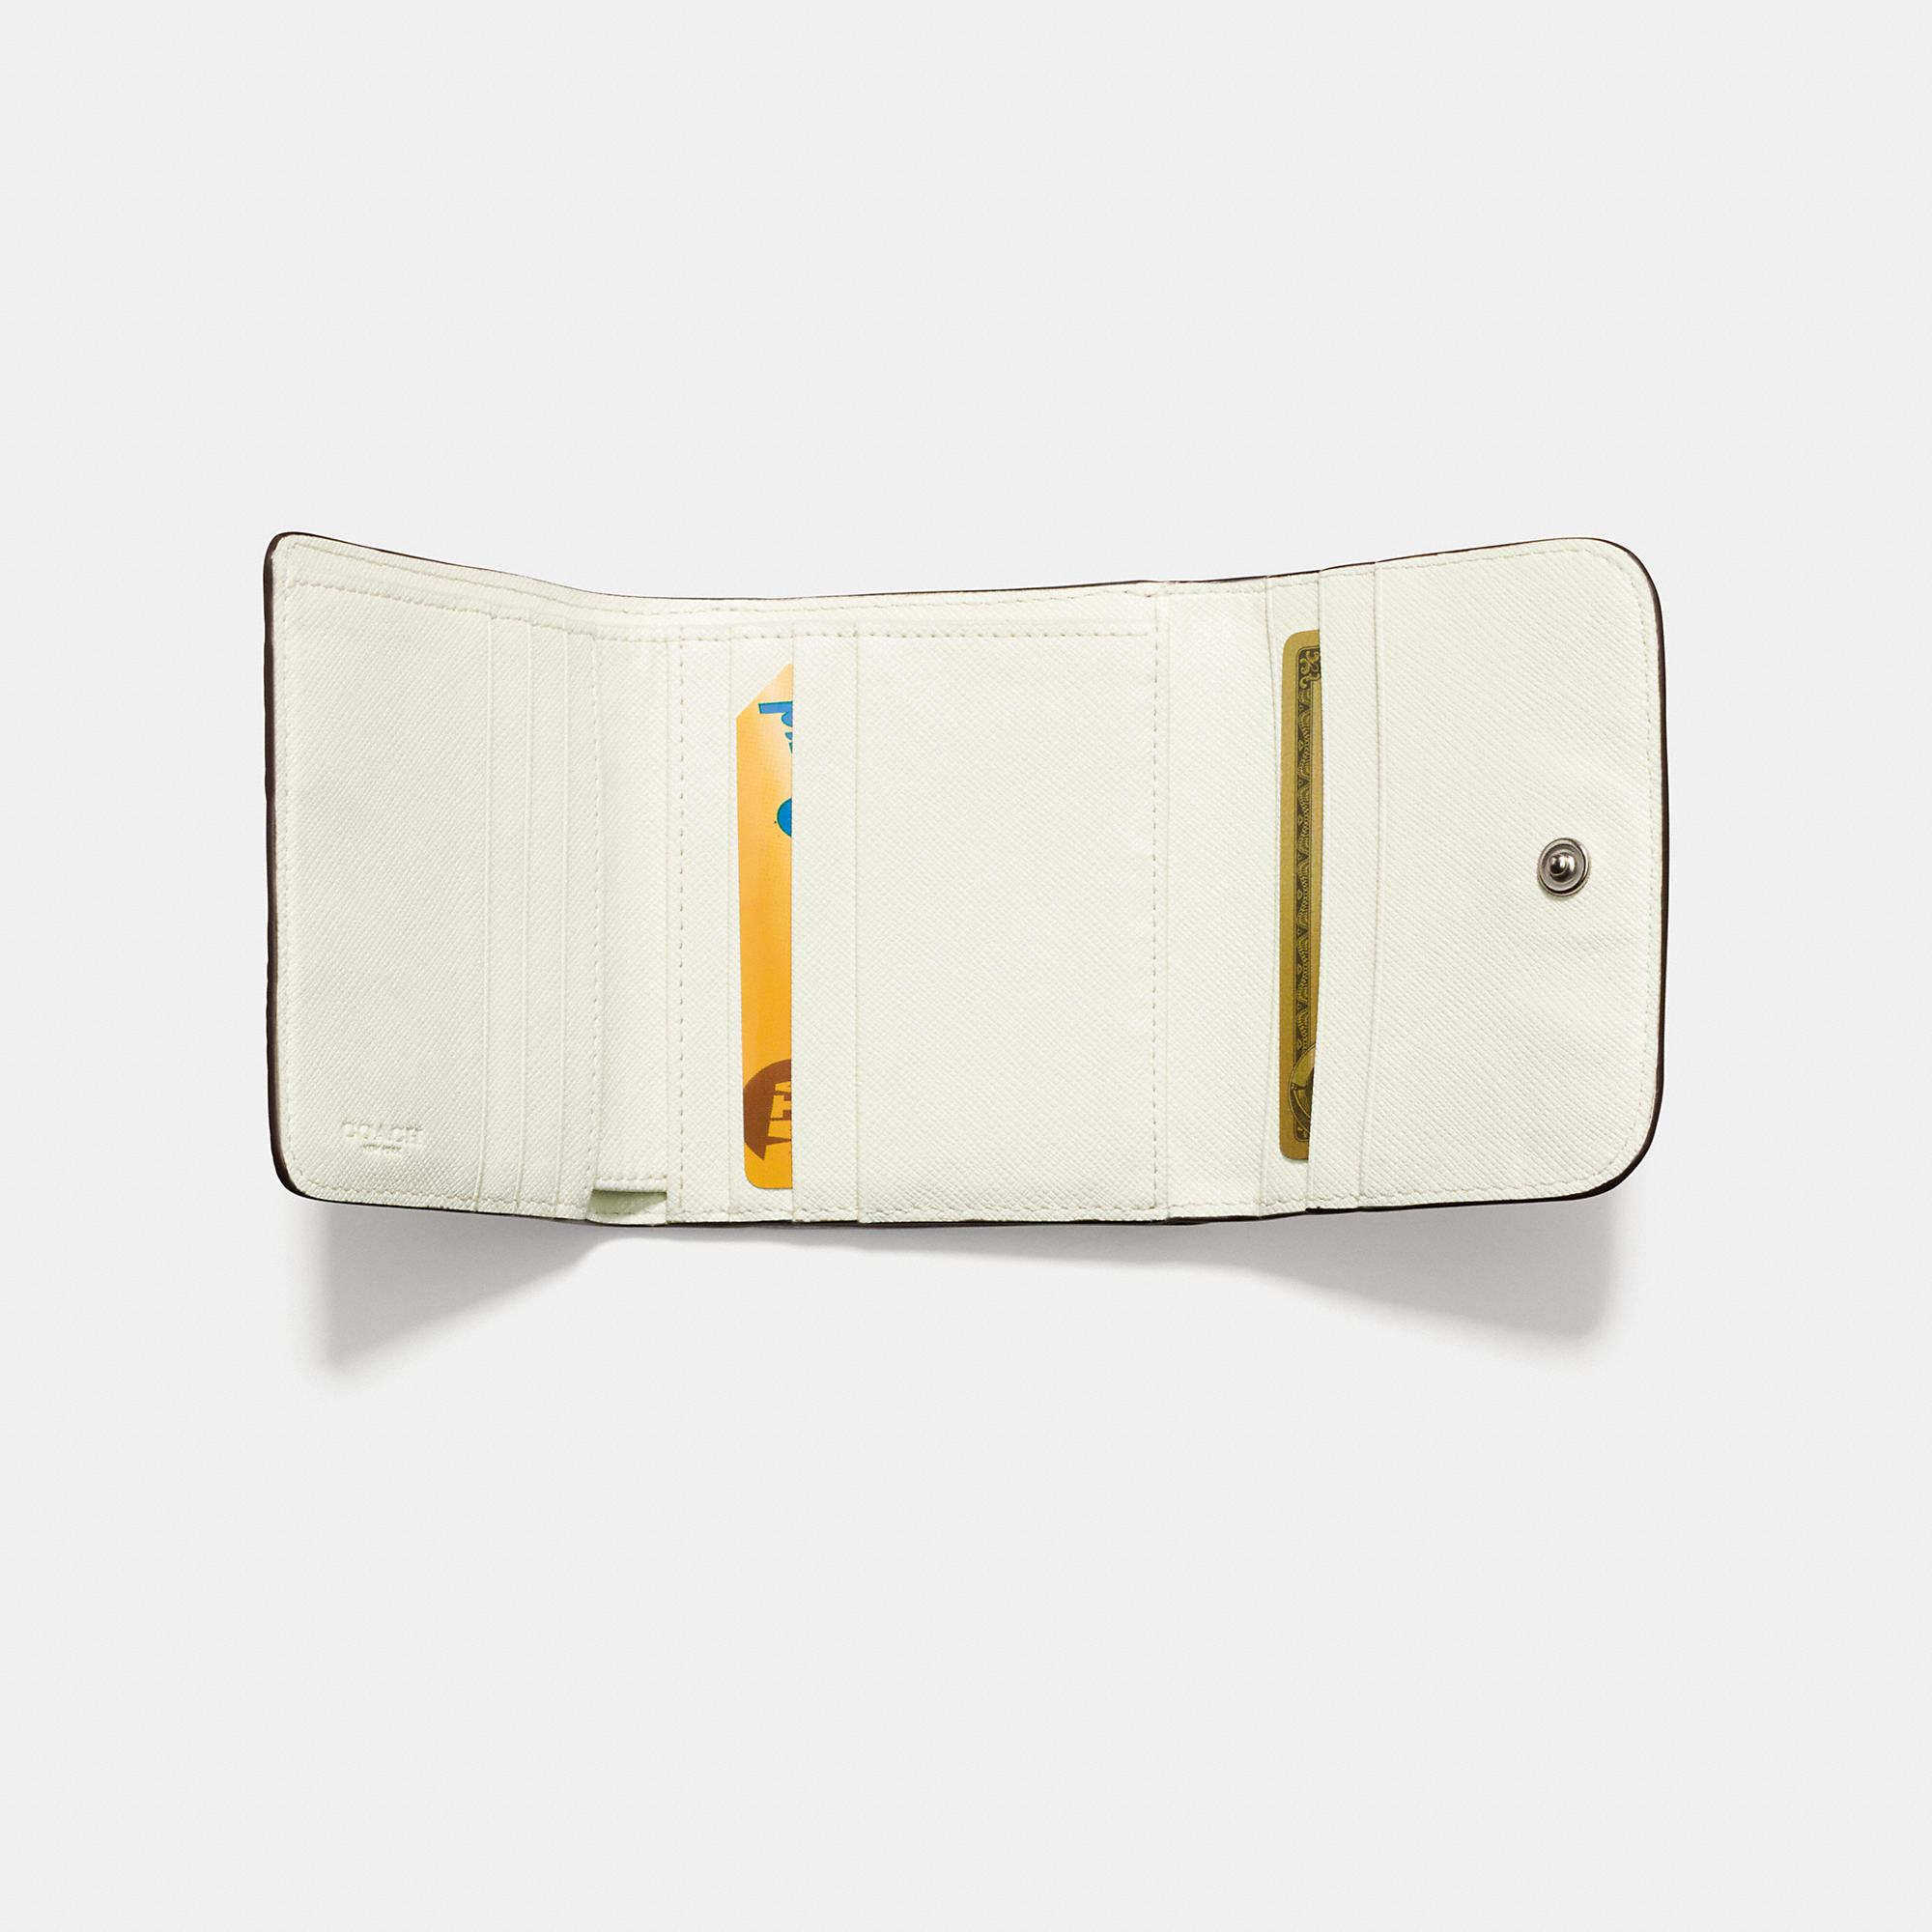 Lyst - COACH Small Wallet In Colorblock Signature Coated Canvas in ... d5d37fd10aab5